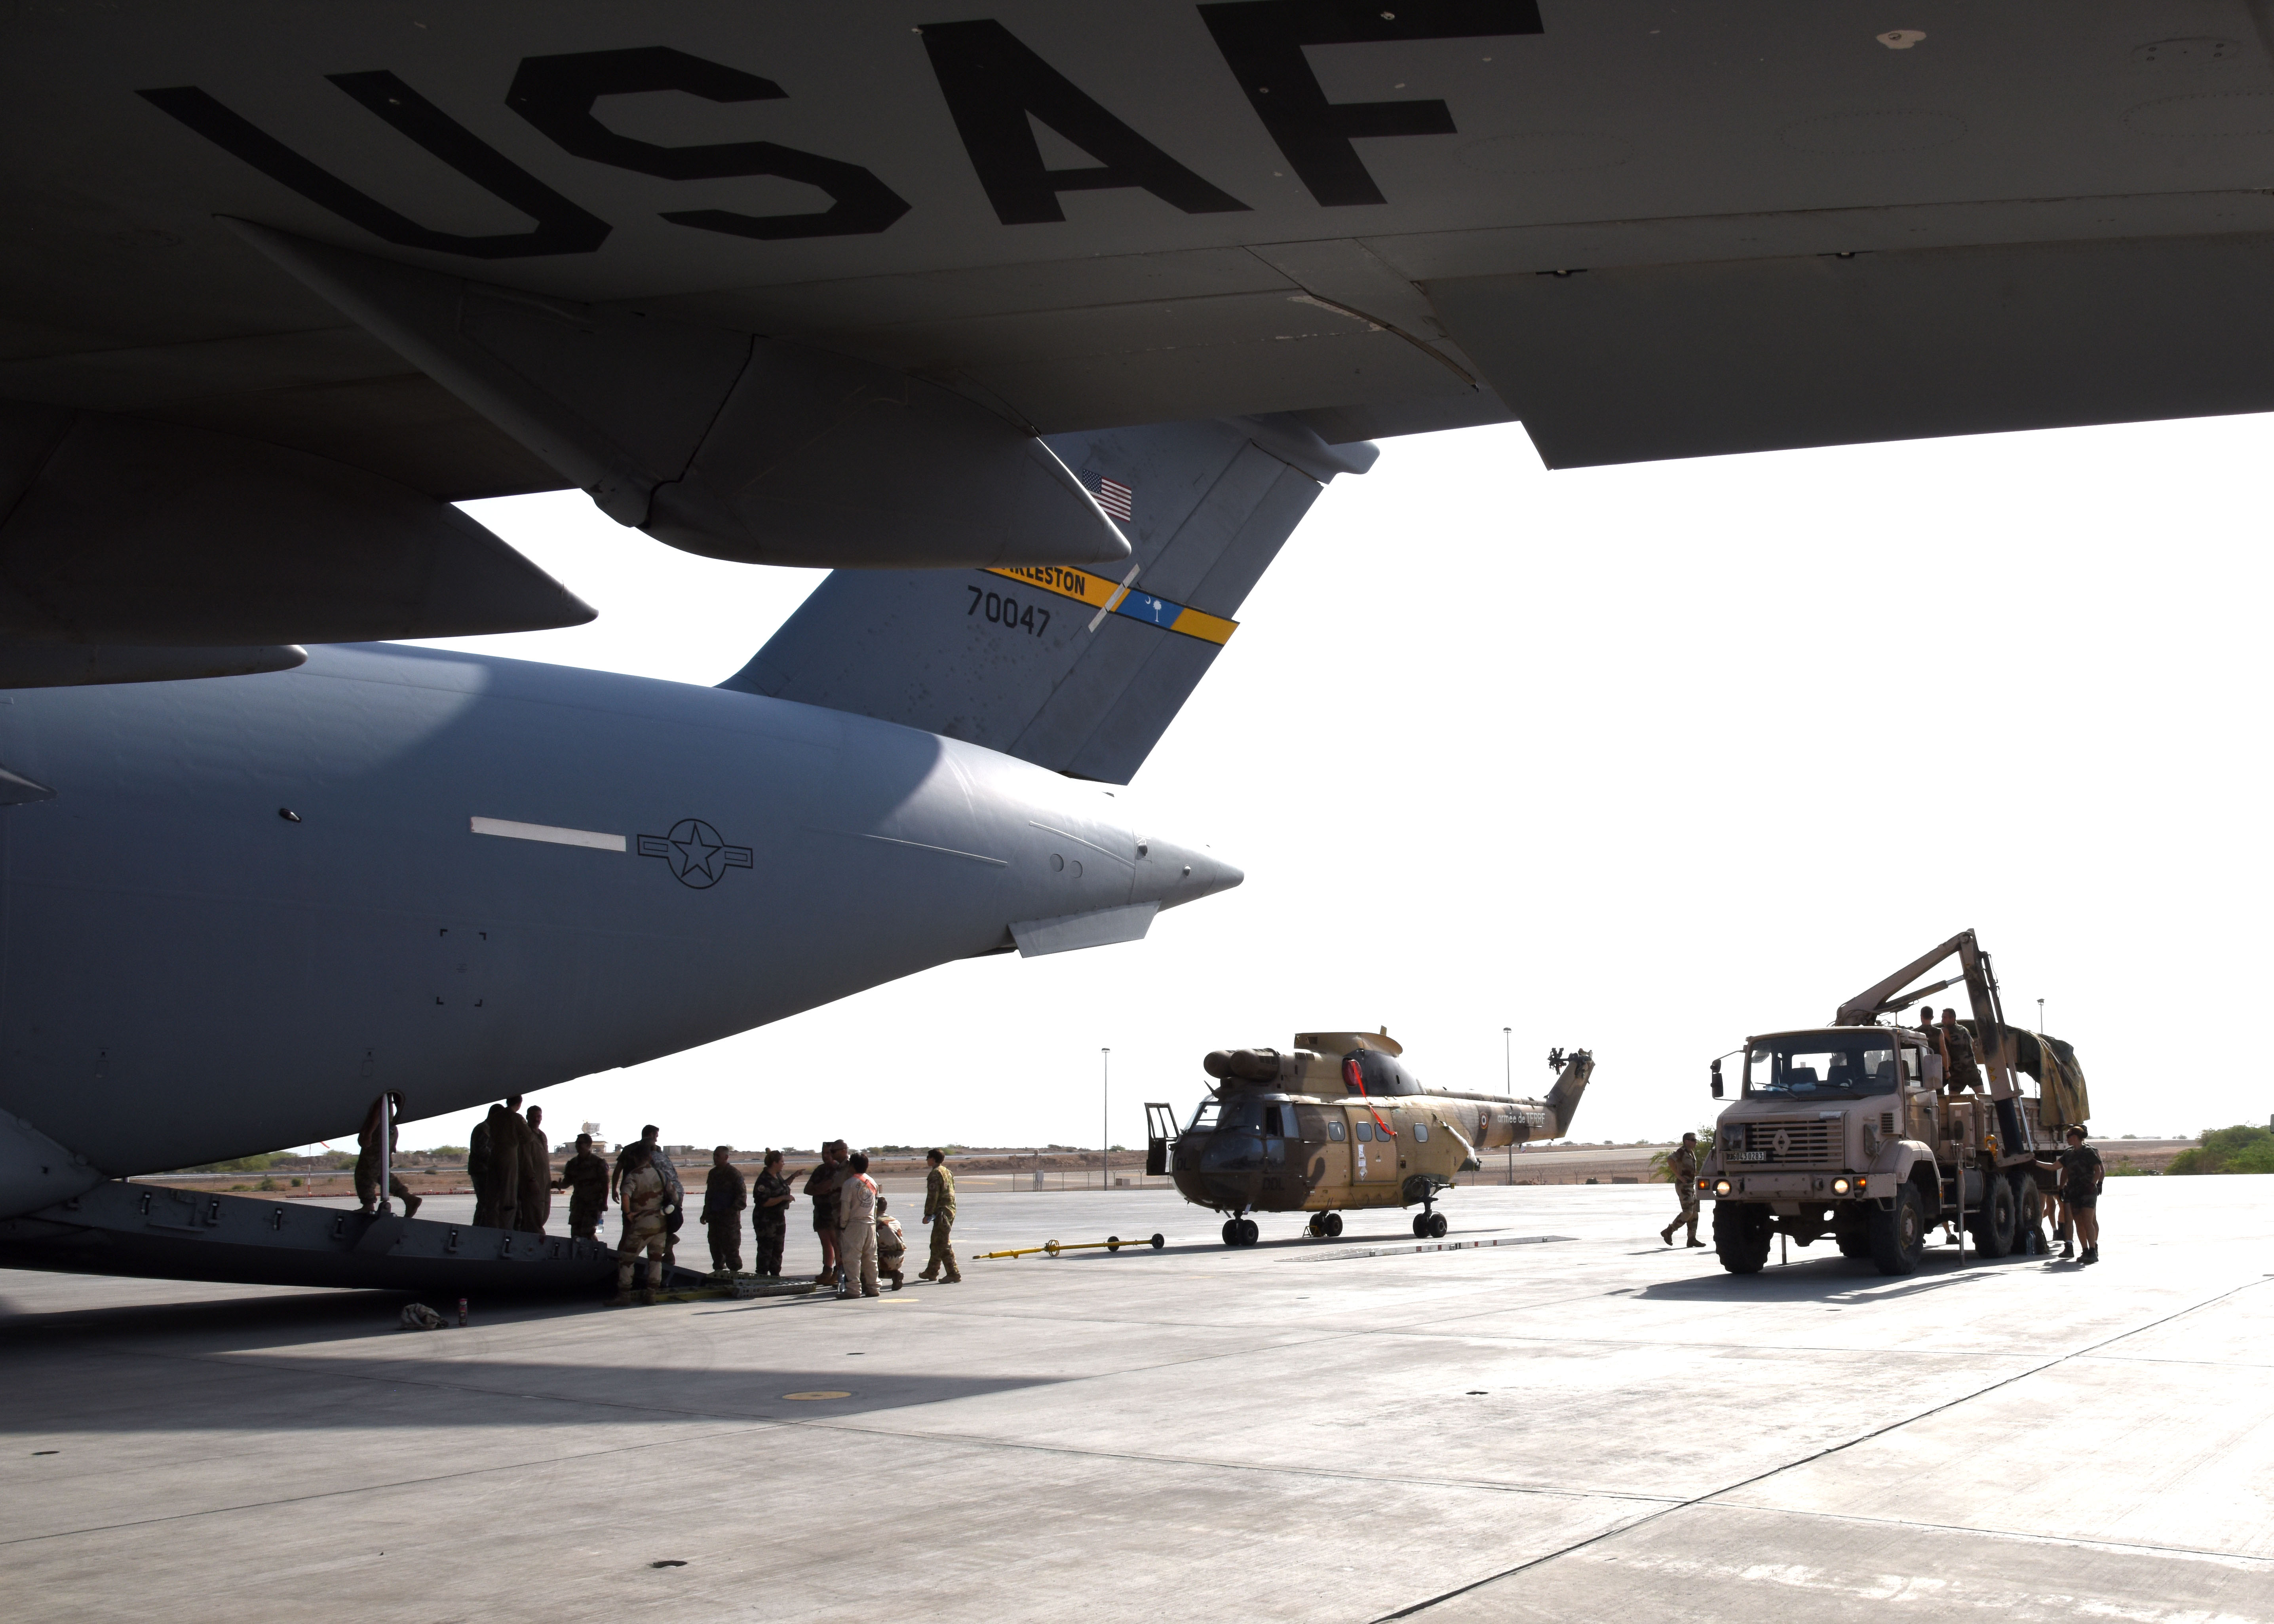 150823-N-DJ346-003 CAMP LEMONNIER, Djibouti (August 23, 2015) French and U.S. service members prepare to transport two French Puma Helicopters and associated Passengers & Cargo to N'Djamena aboard a U.S. Air Force C-17 Globemaster. The helicopters support French operations at the intersecting borders of Libya, Chad and Niger deterring weapons and drug smuggling, and jihadist regularly crossing between nations. This is the first time France has received support from U.S. Forces in Djibouti for any mission outside of East Africa. (U.S. Navy photo by Chief Mass Communication Specialist Donald W. Randall/Released)